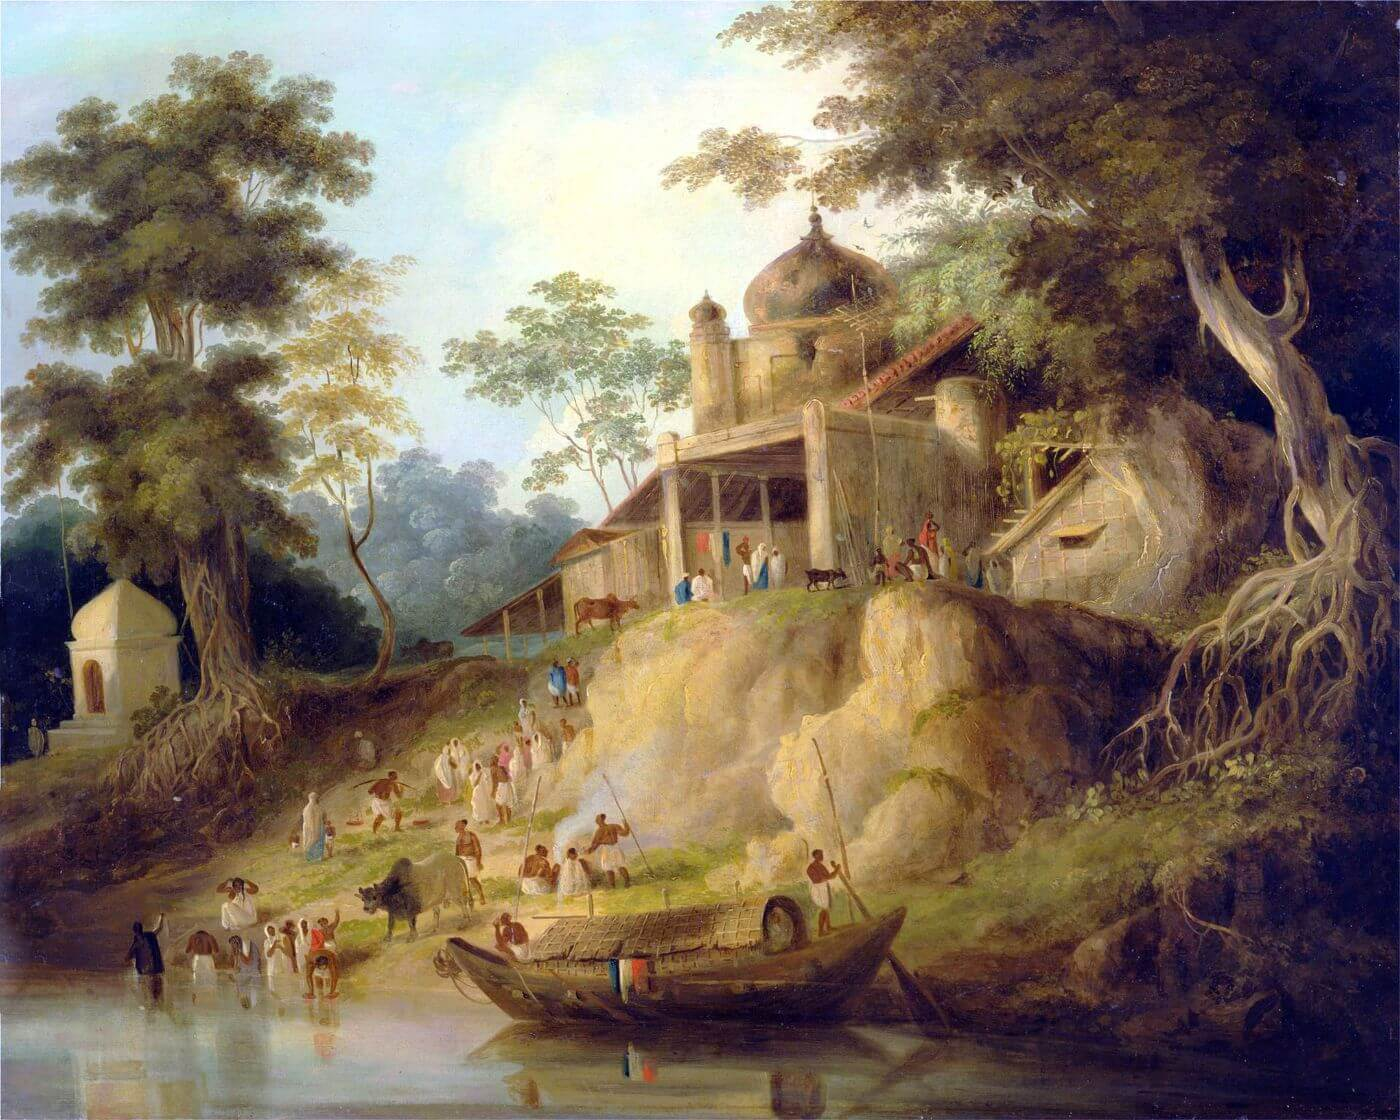 The Banks of the Ganges - William Daniell - Vintage Orientalist Painitng of India c1825 - Life Size Posters